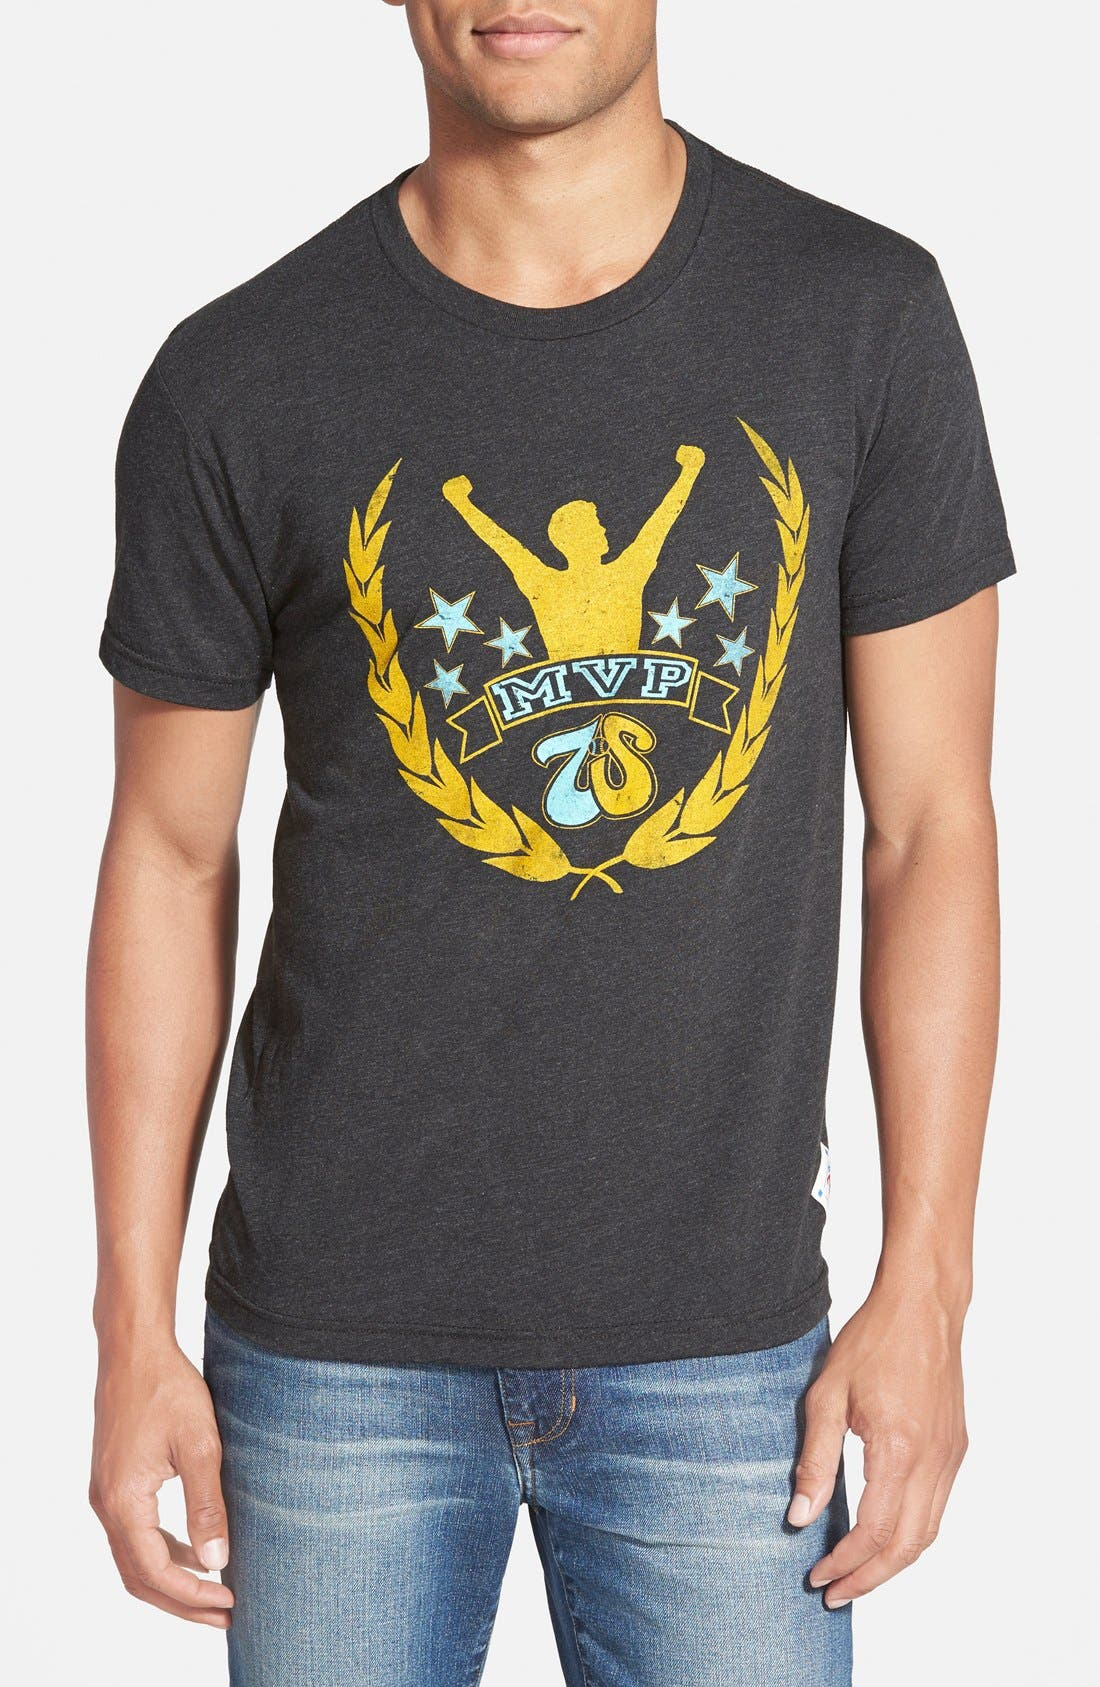 7th Inning Stretch 'Victory' Graphic T-Shirt